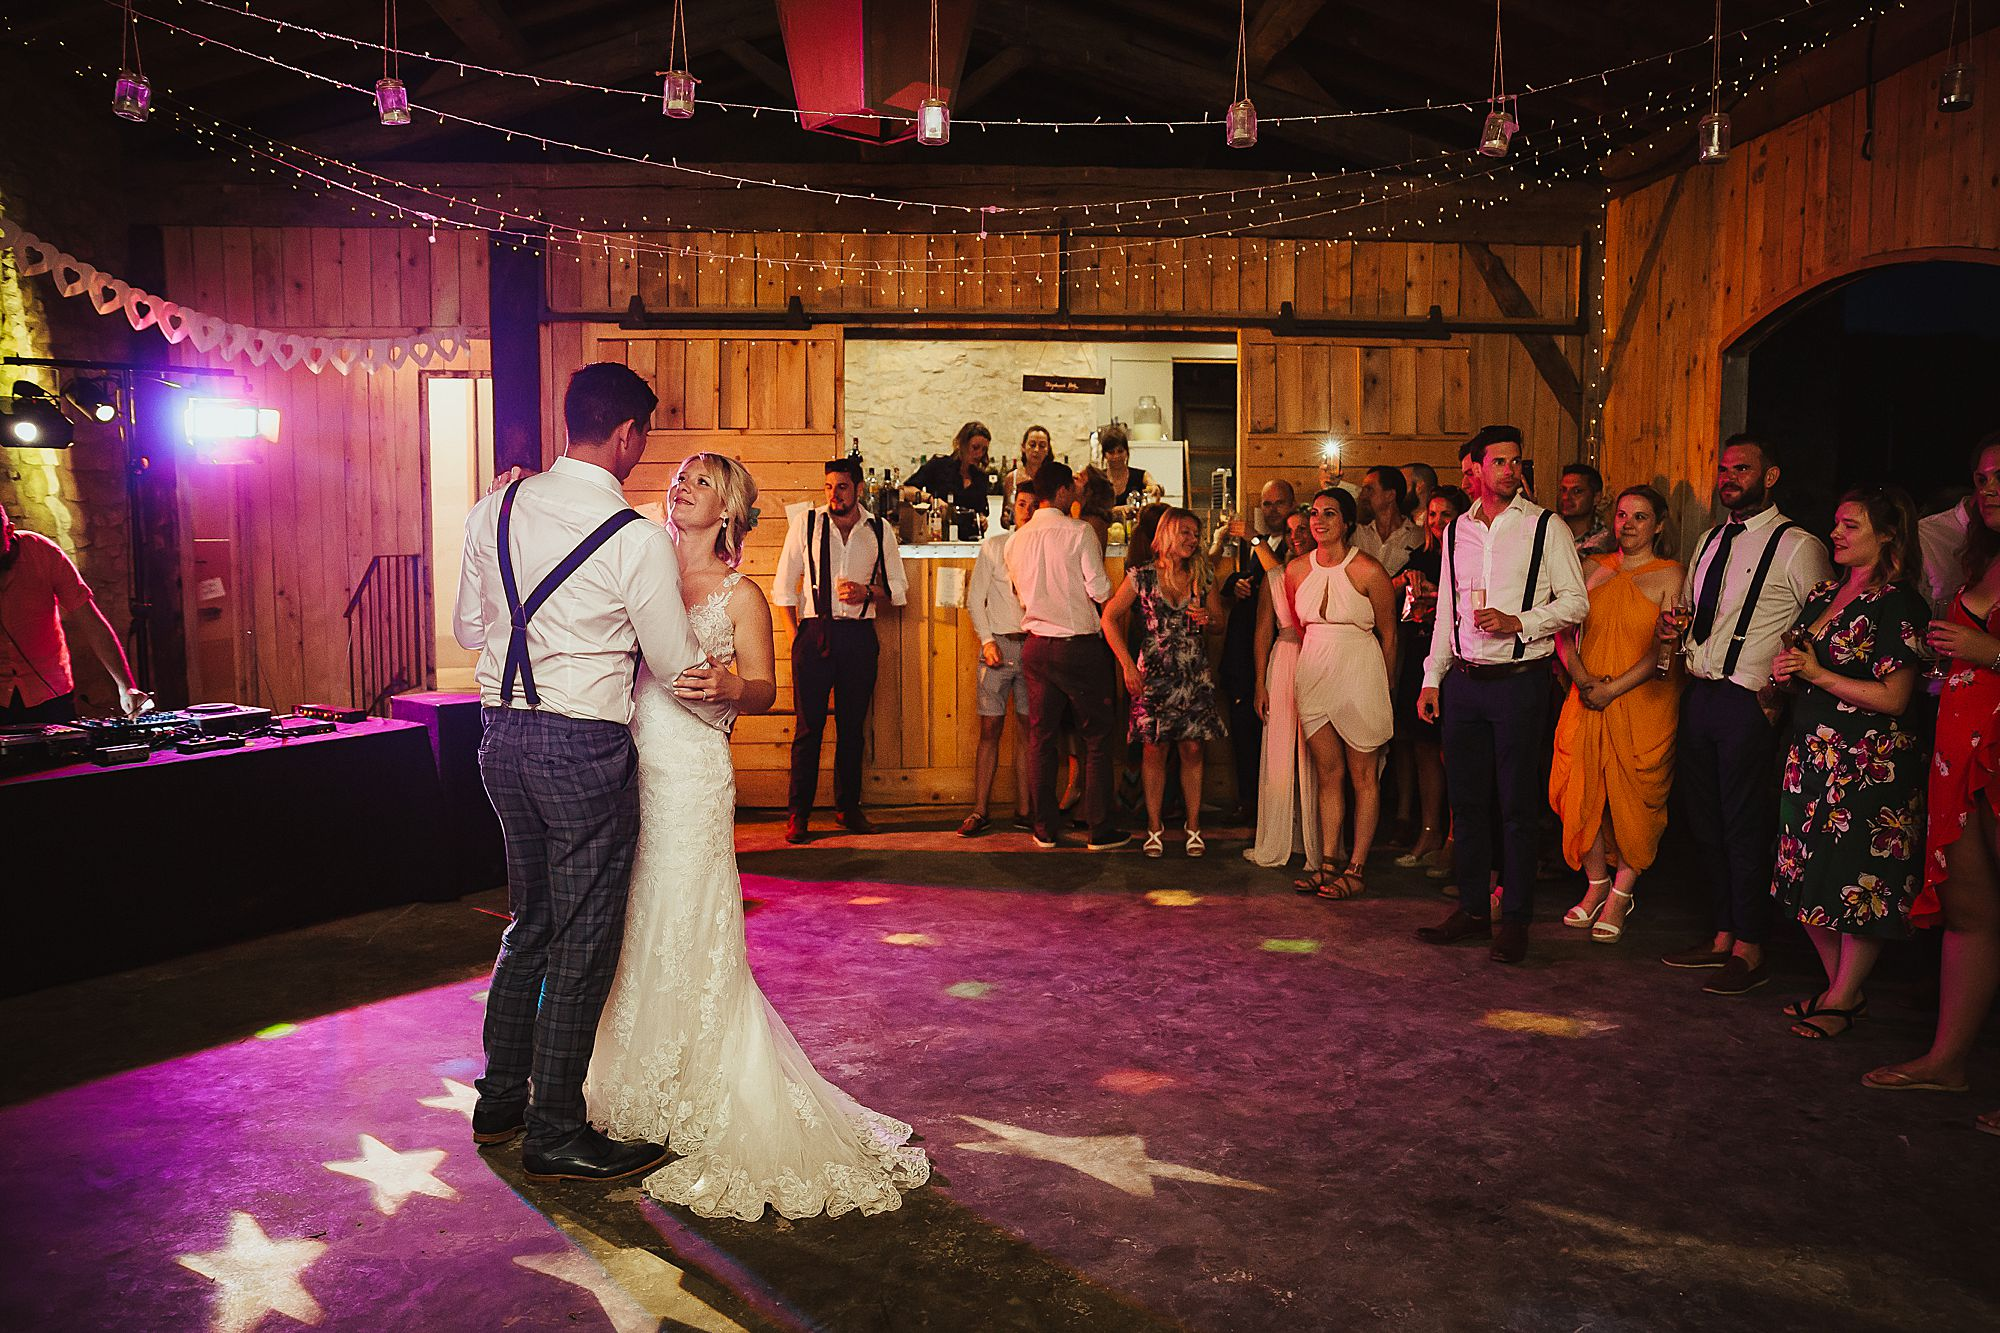 dancing at Chateau de Queille Wedding